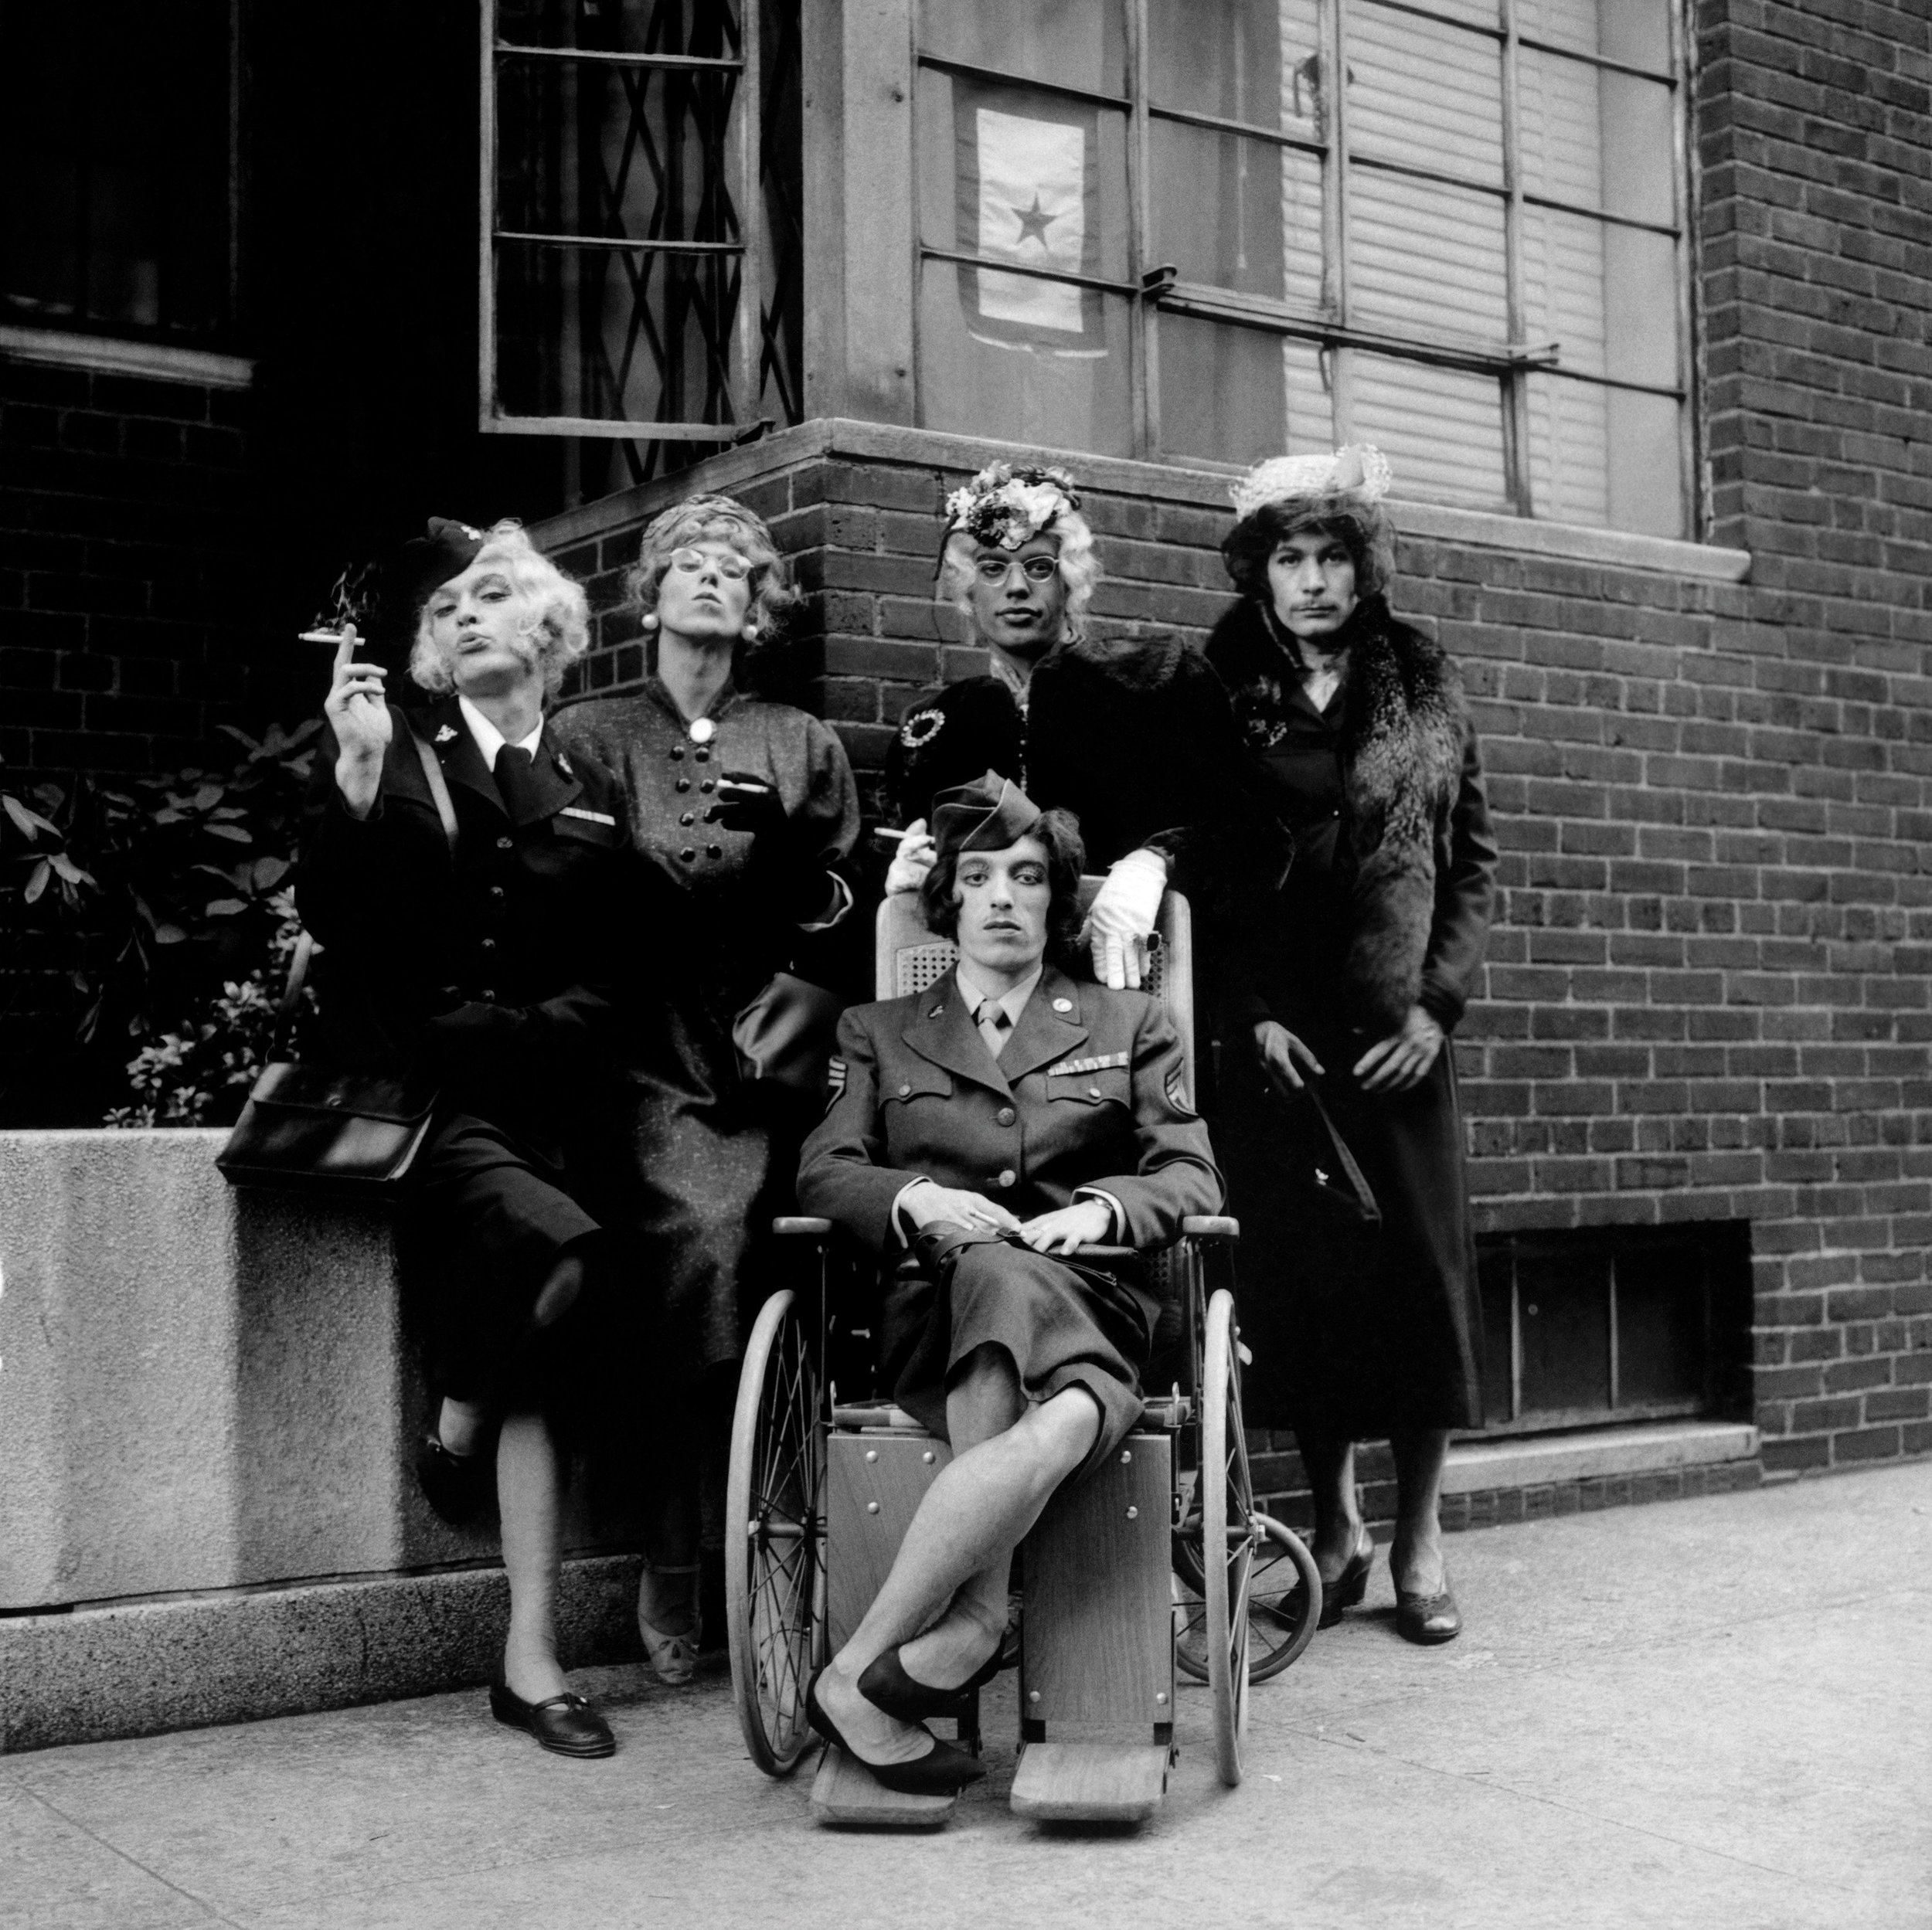 The Rolling Stones in drag, 1966. Photo by Jerry Schatzberg.